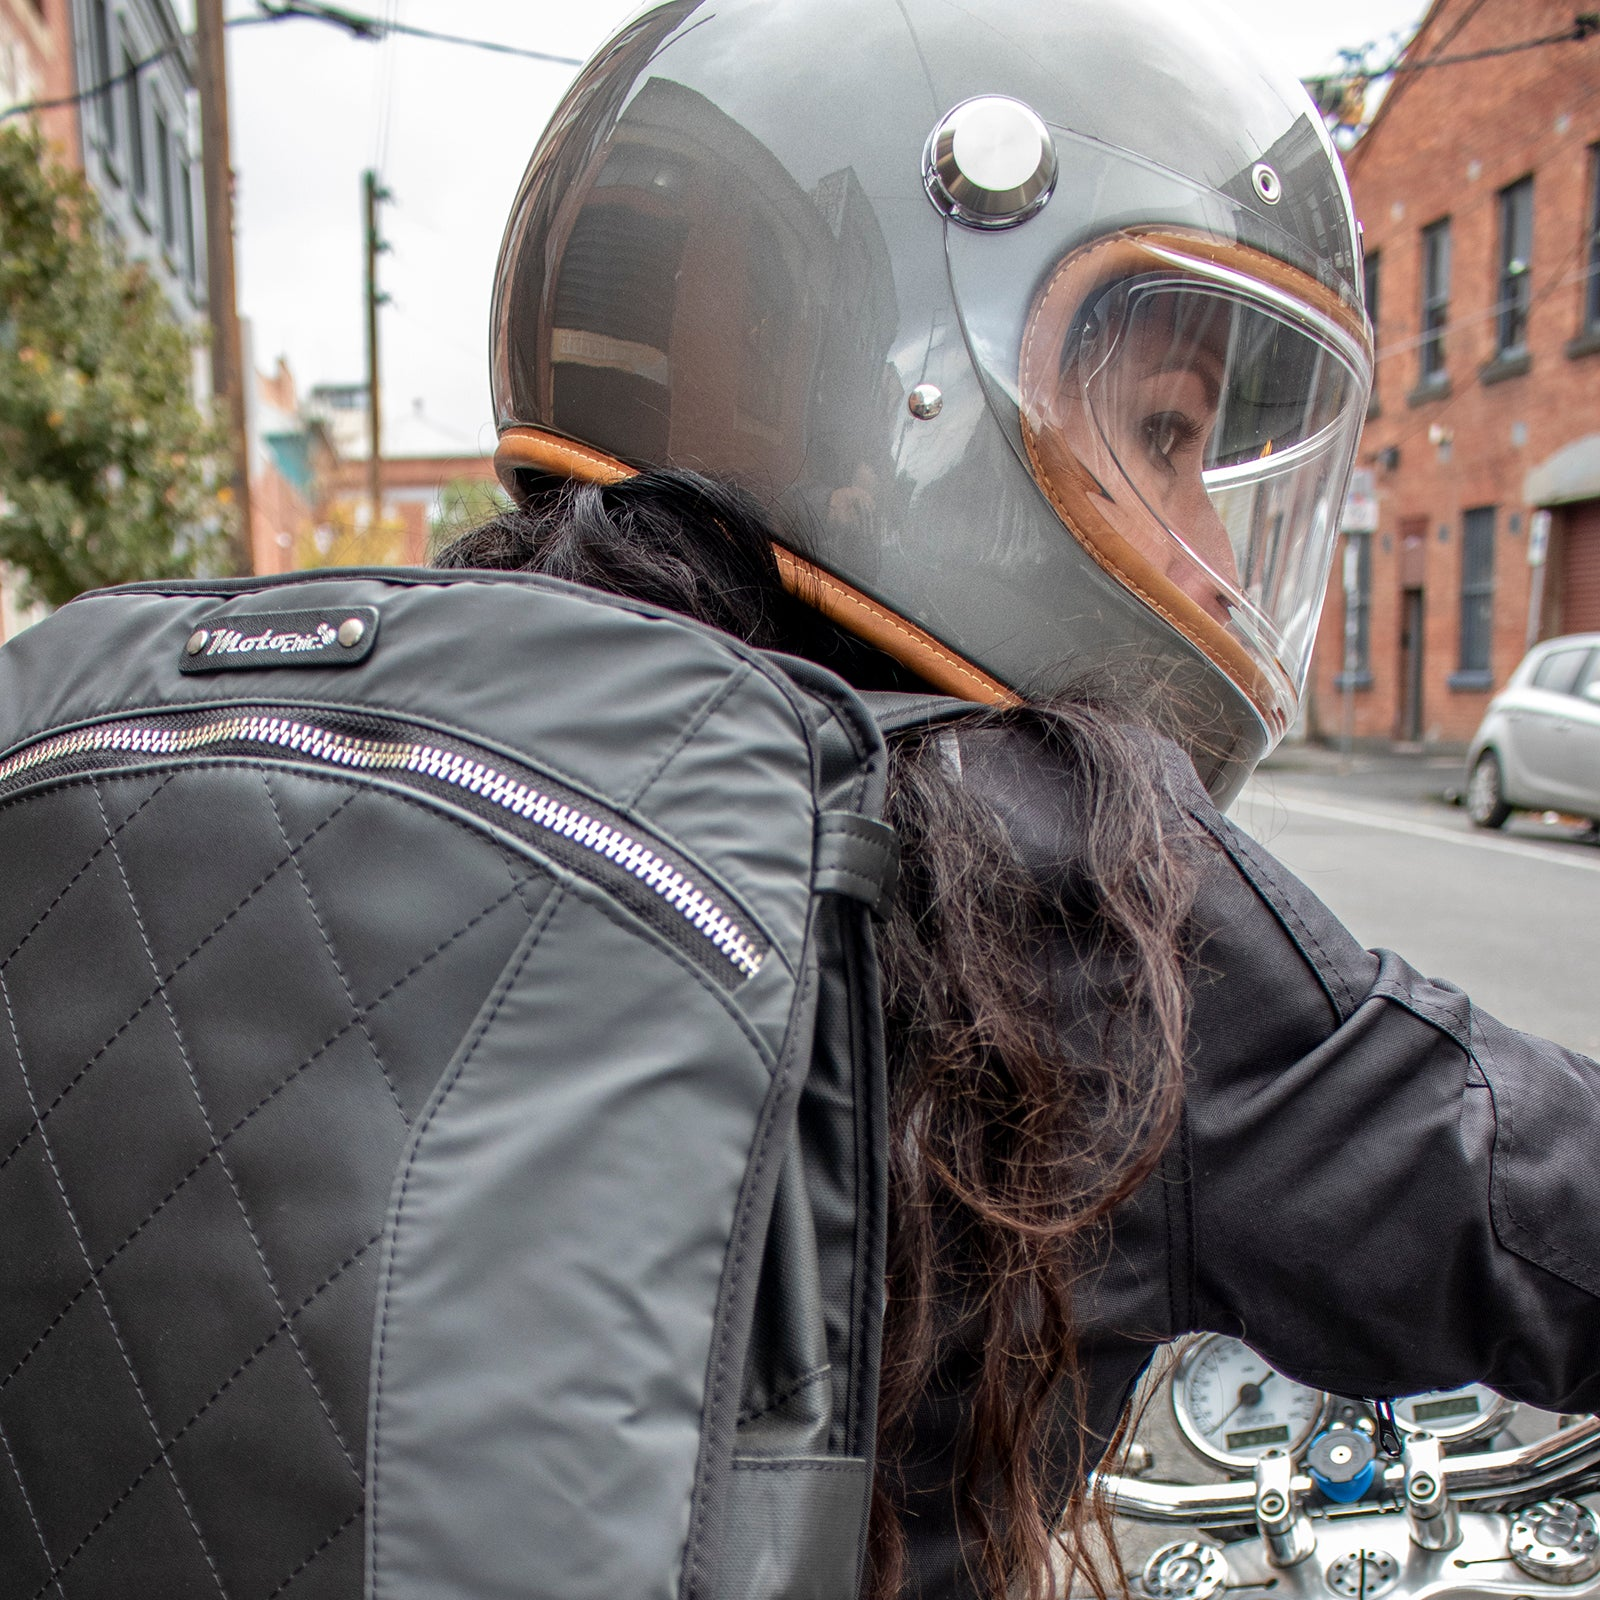 SIX MOTORCYCLE ITEMS TO KEEP YOU WARM THIS WINTER